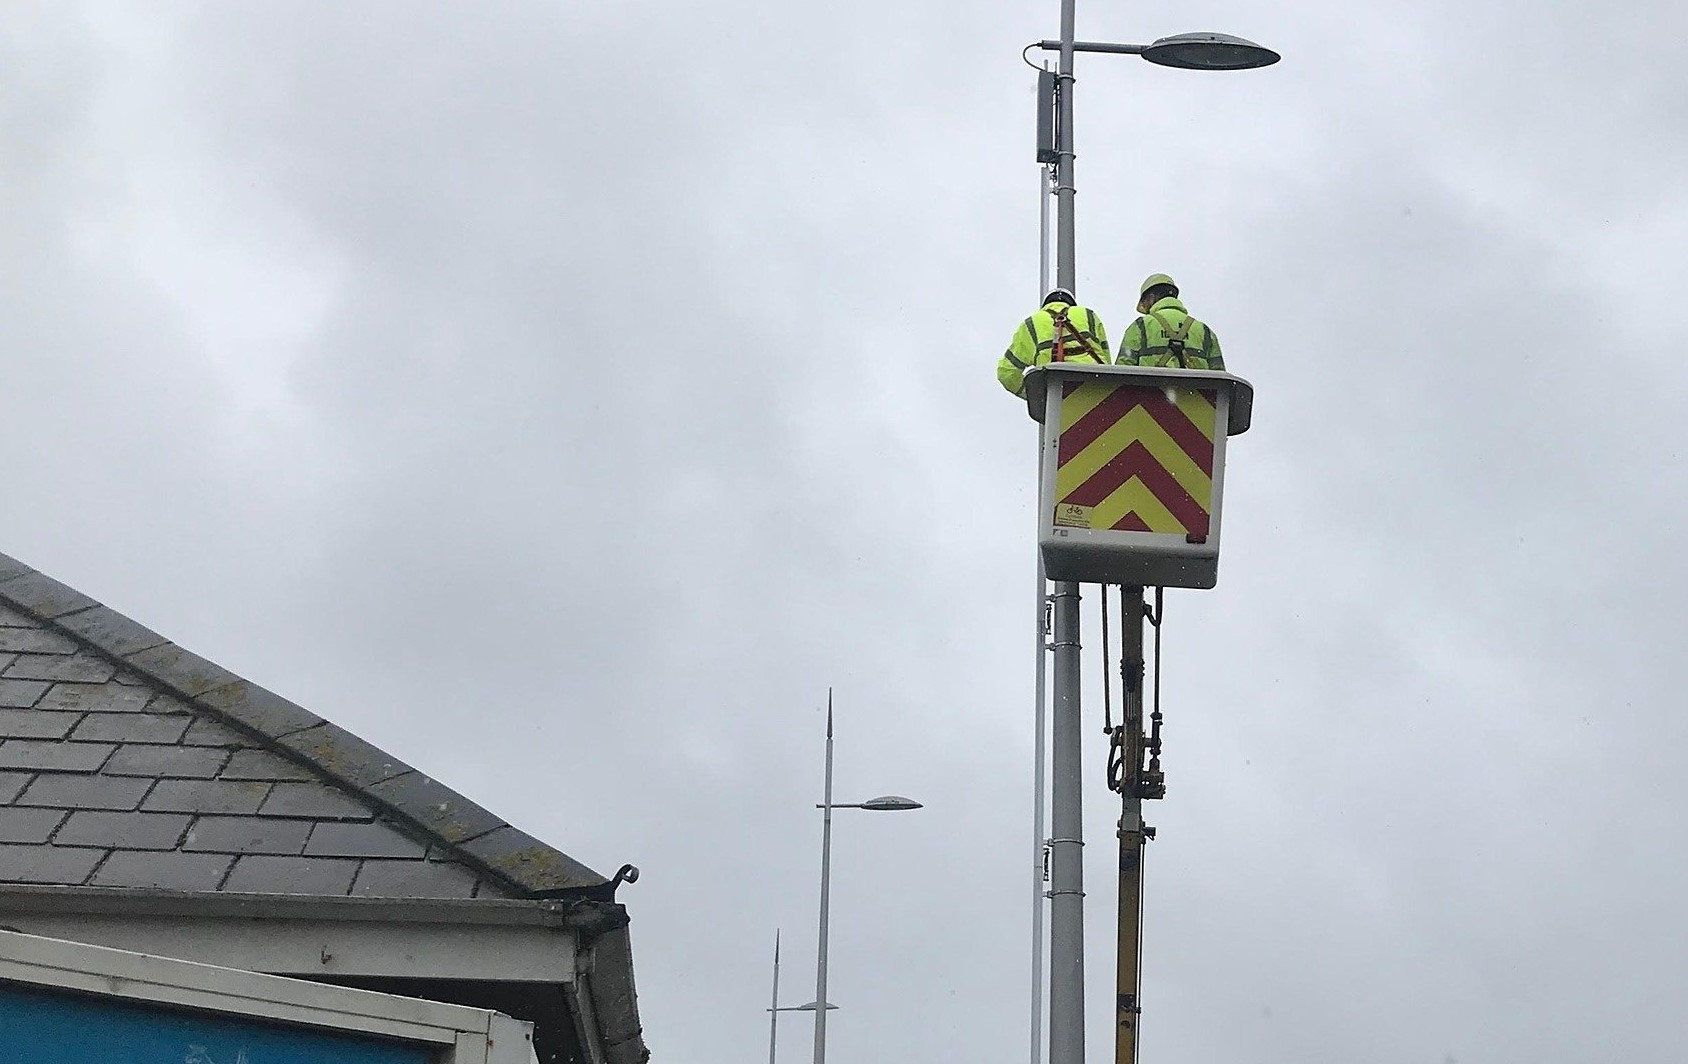 Work underway to install new LED lights along Weymouth seafront